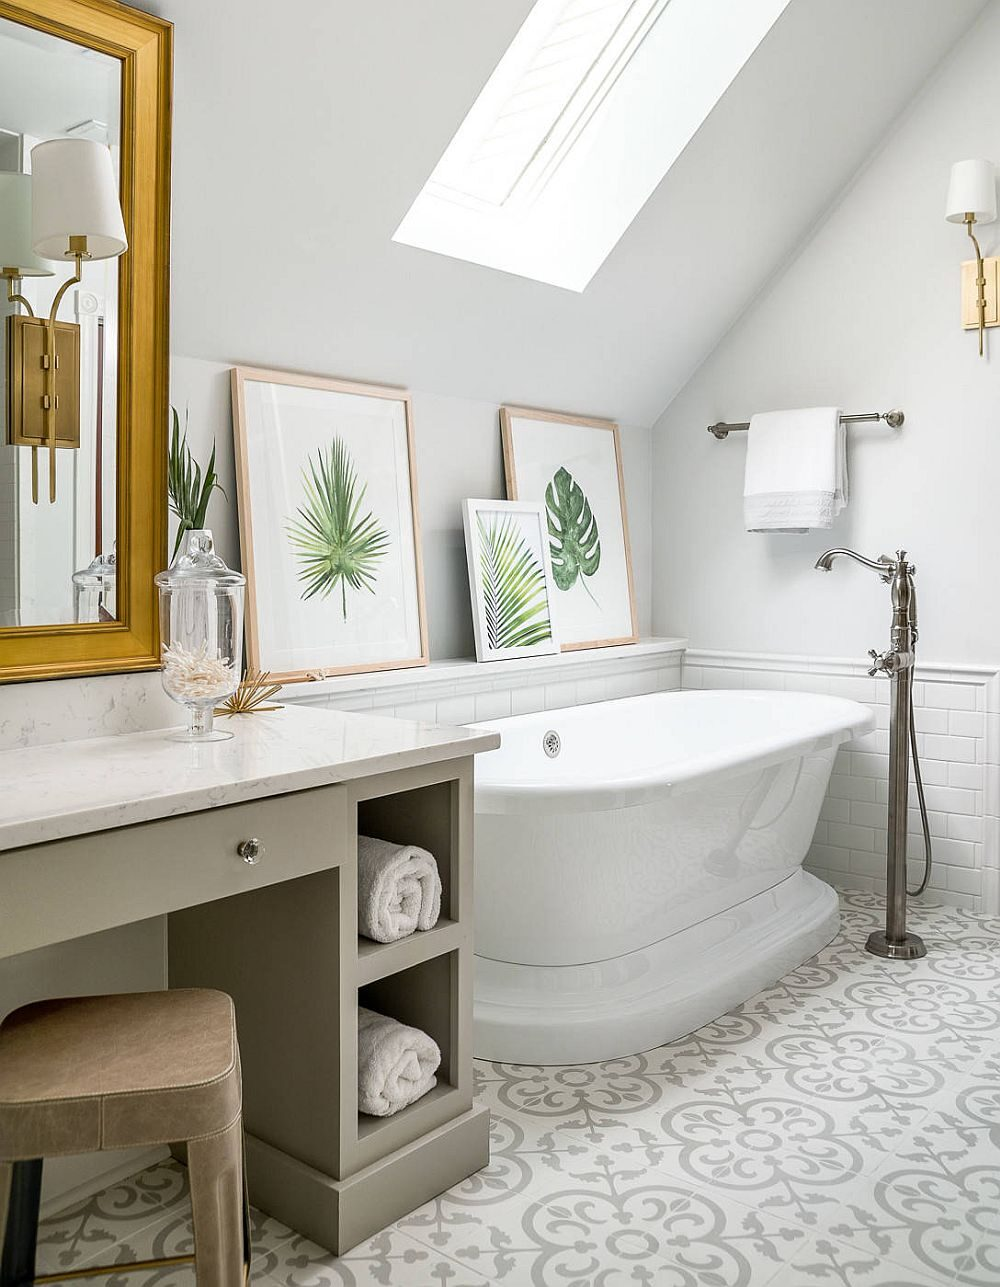 brilliant-use-of-framed-botanicals-on-a-ledge-next-to-the-freestanding-bathtub-in-the-revamped-attic-bathroom-58260-9053891-9037222-6688035